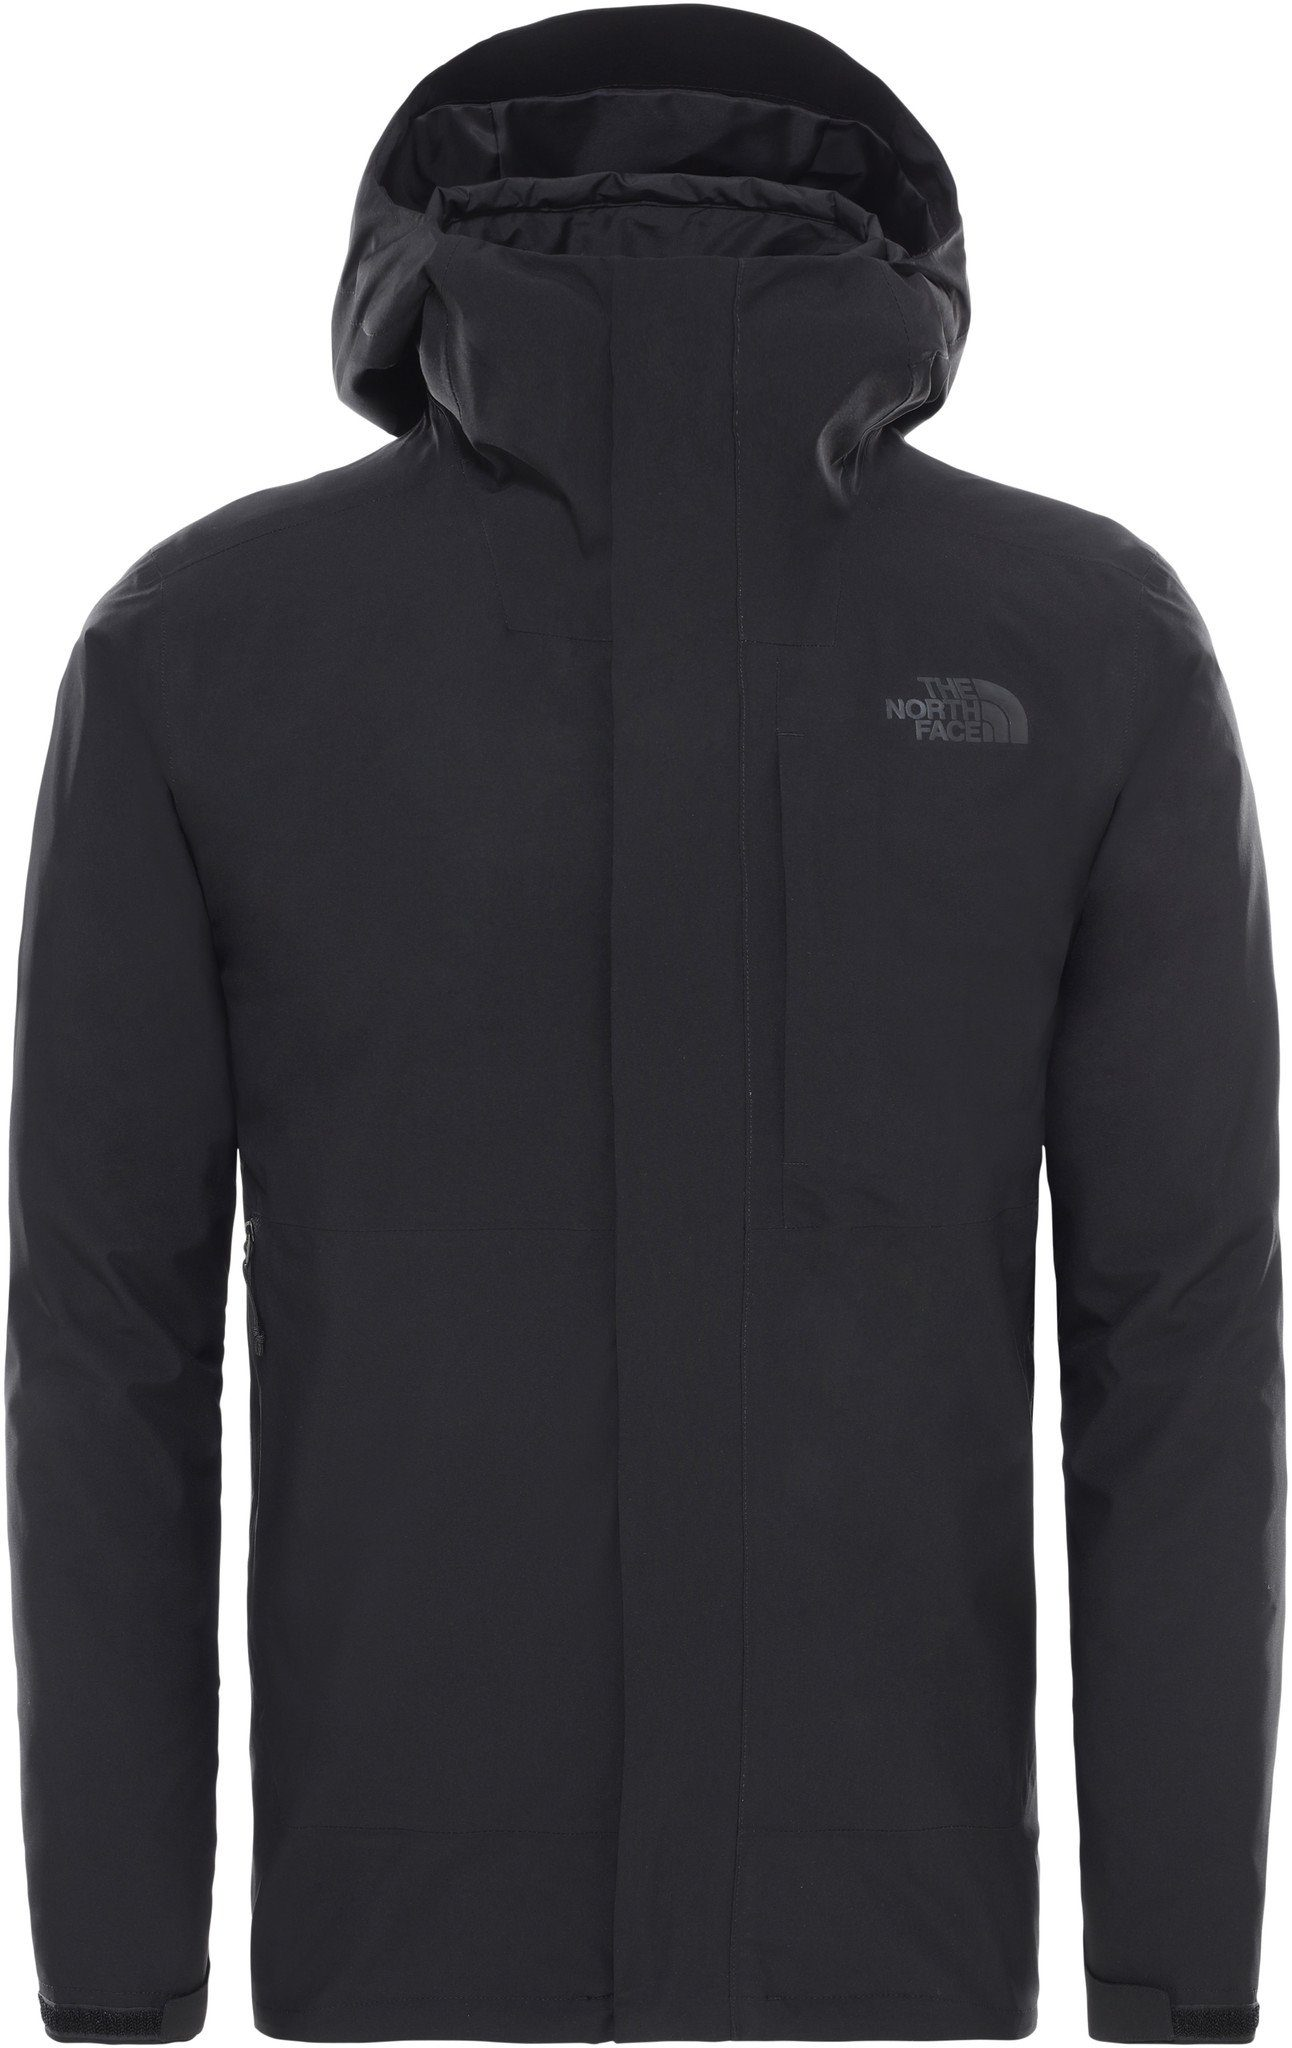 The North Face Outdoorjacke »Syn Triclimate Isolierende Jacke Herren« online kaufen | OTTO